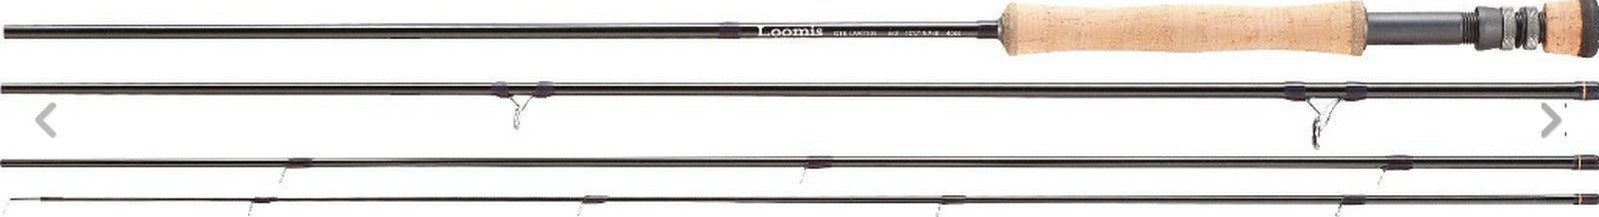 Loomis and Franklin Predator  fly fishing rods new 2017  .  8 wt to 12 wt 00437